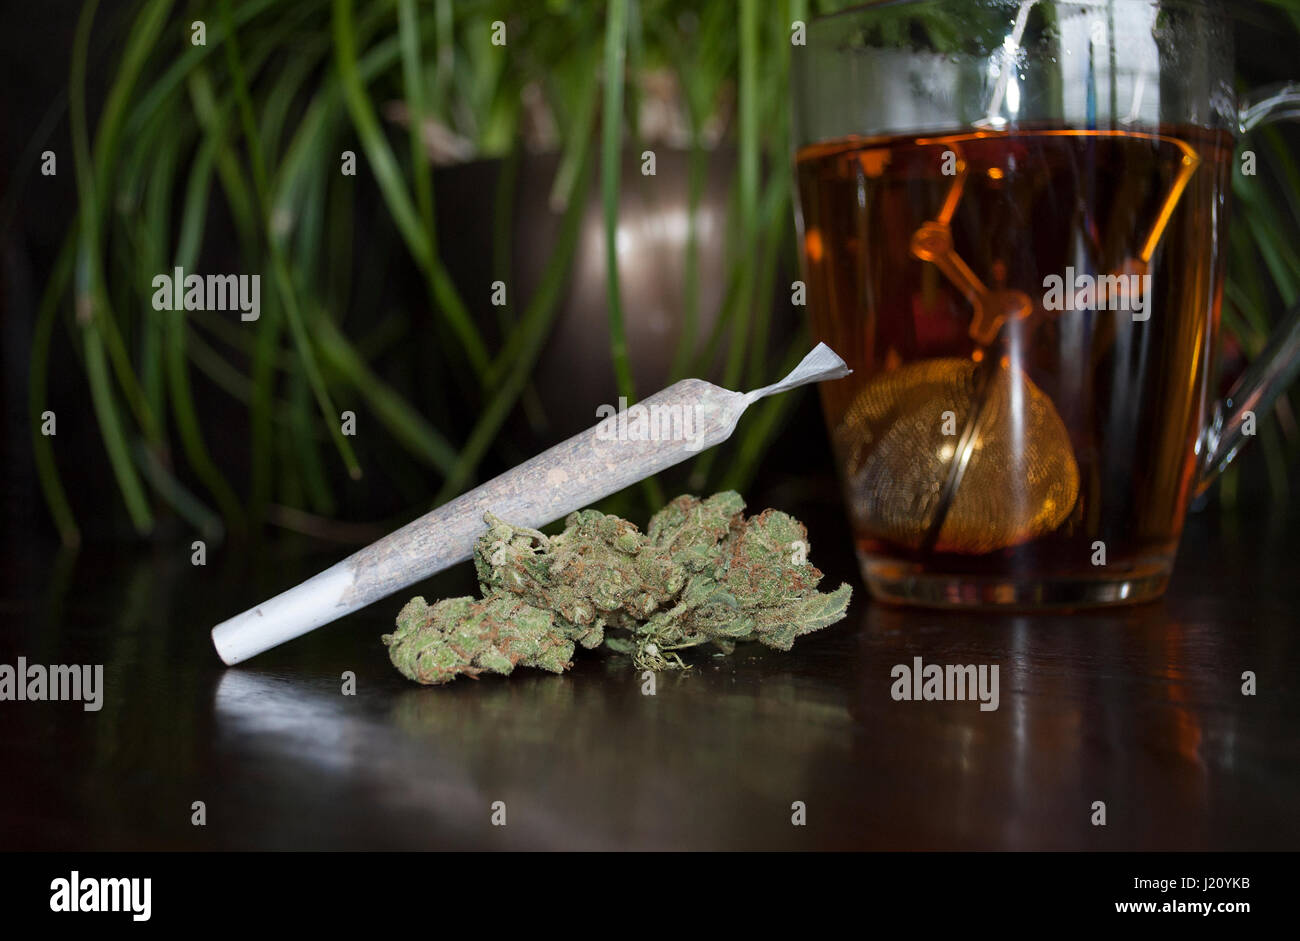 closeup of rolled marijuana weed joint and buds on wooden background, with cup of rooibos tea Stock Photo